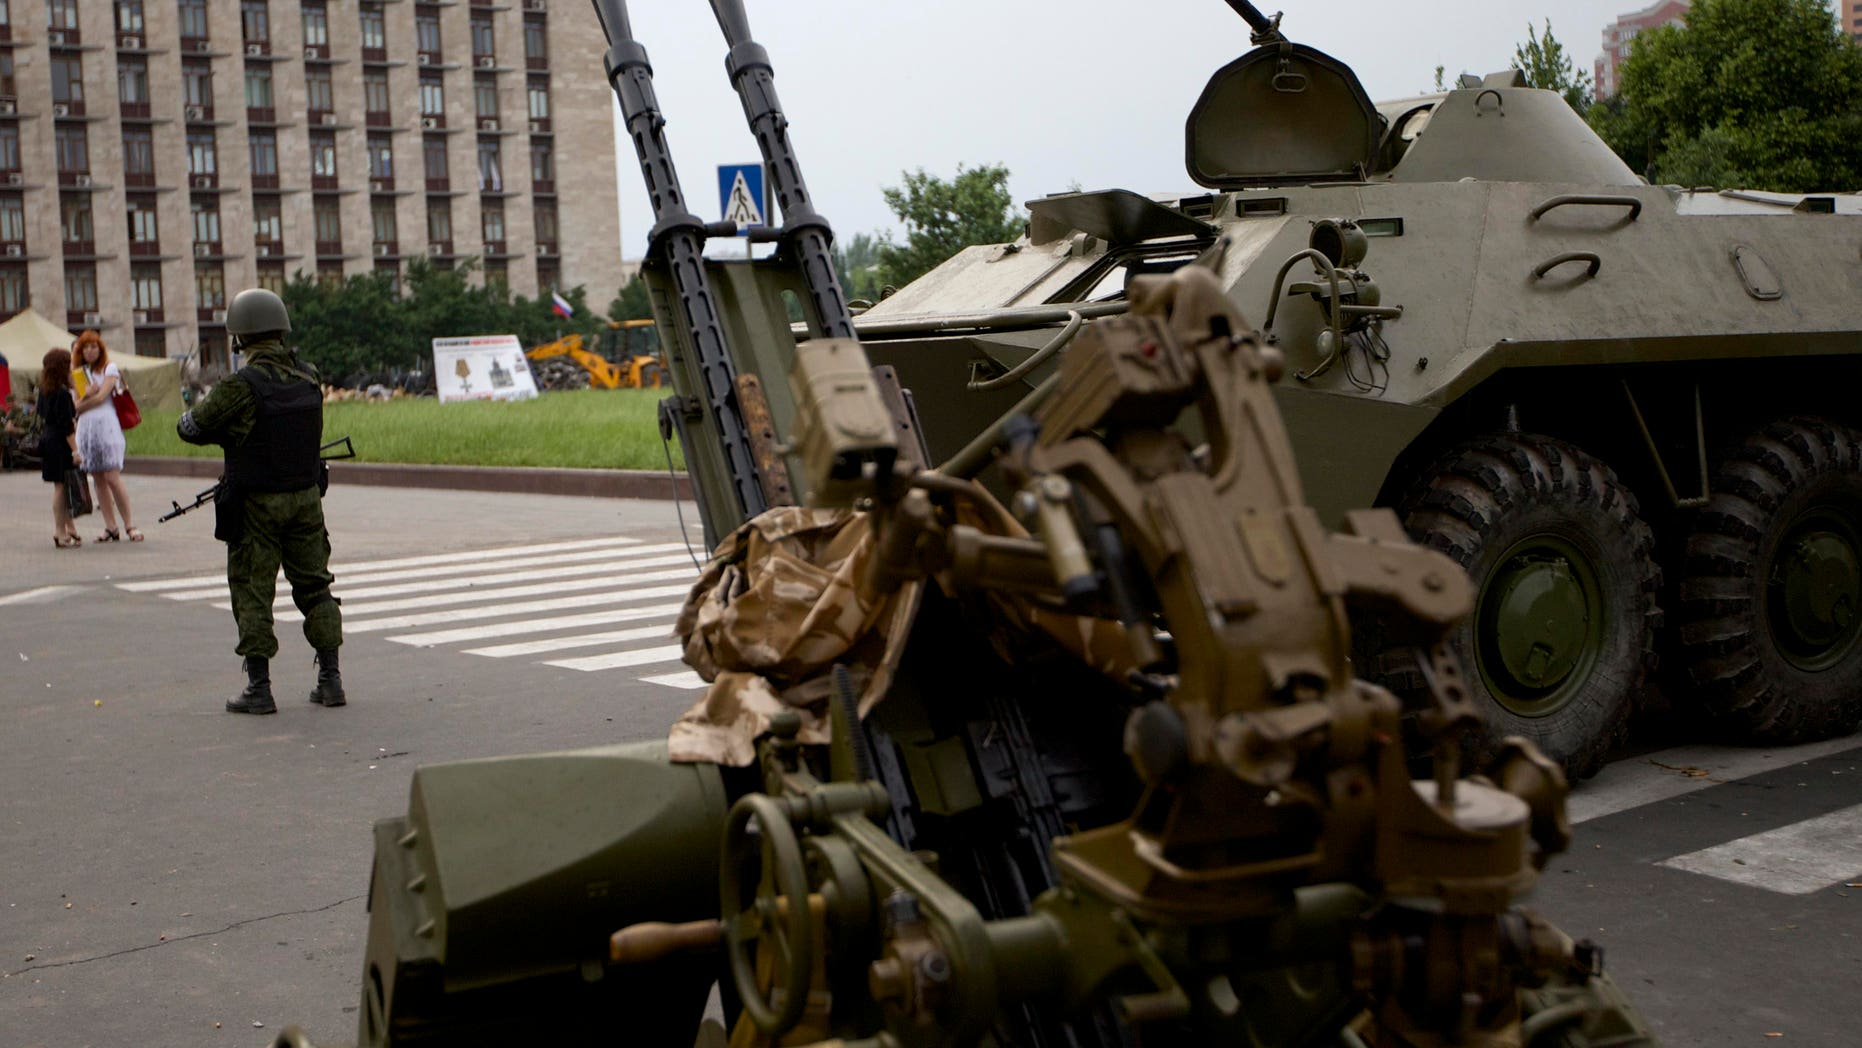 May 29, 2014: A Pro-Russian militia member guards next to an APC and anti-aircraft gun, outside the administrational building in Donetsk, Ukraine.